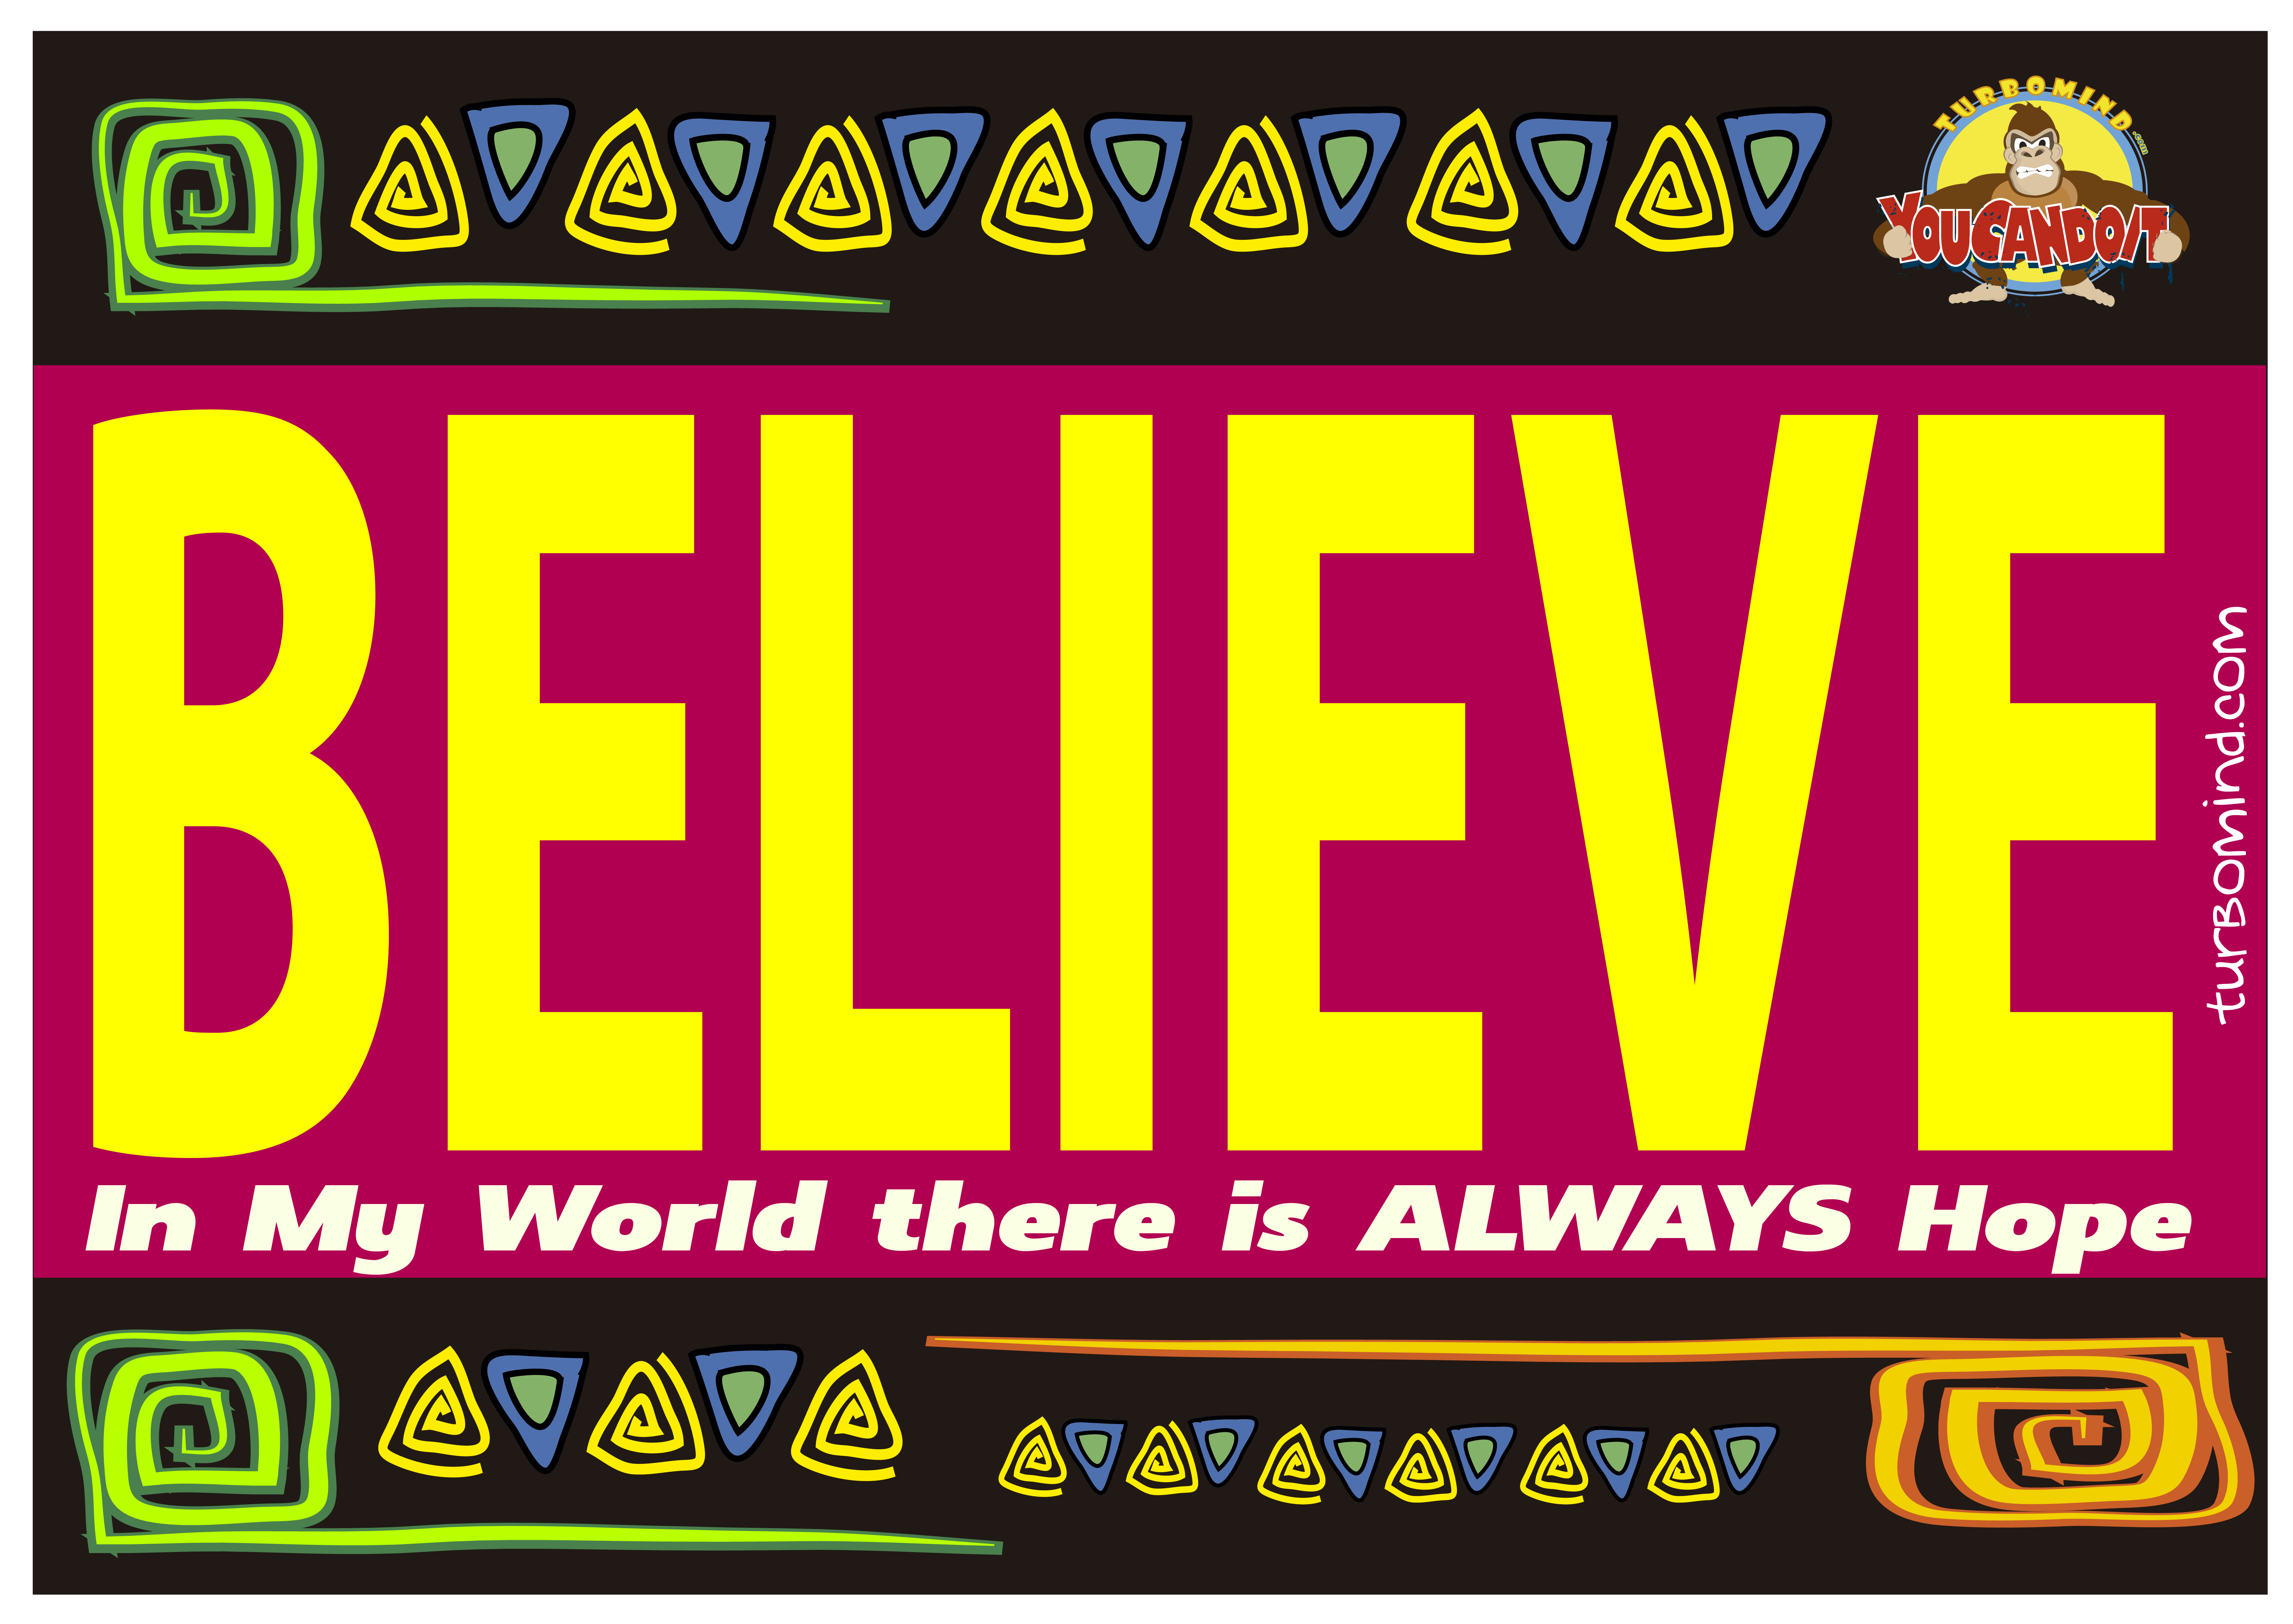 Believe. In My World there is Always HOPE.